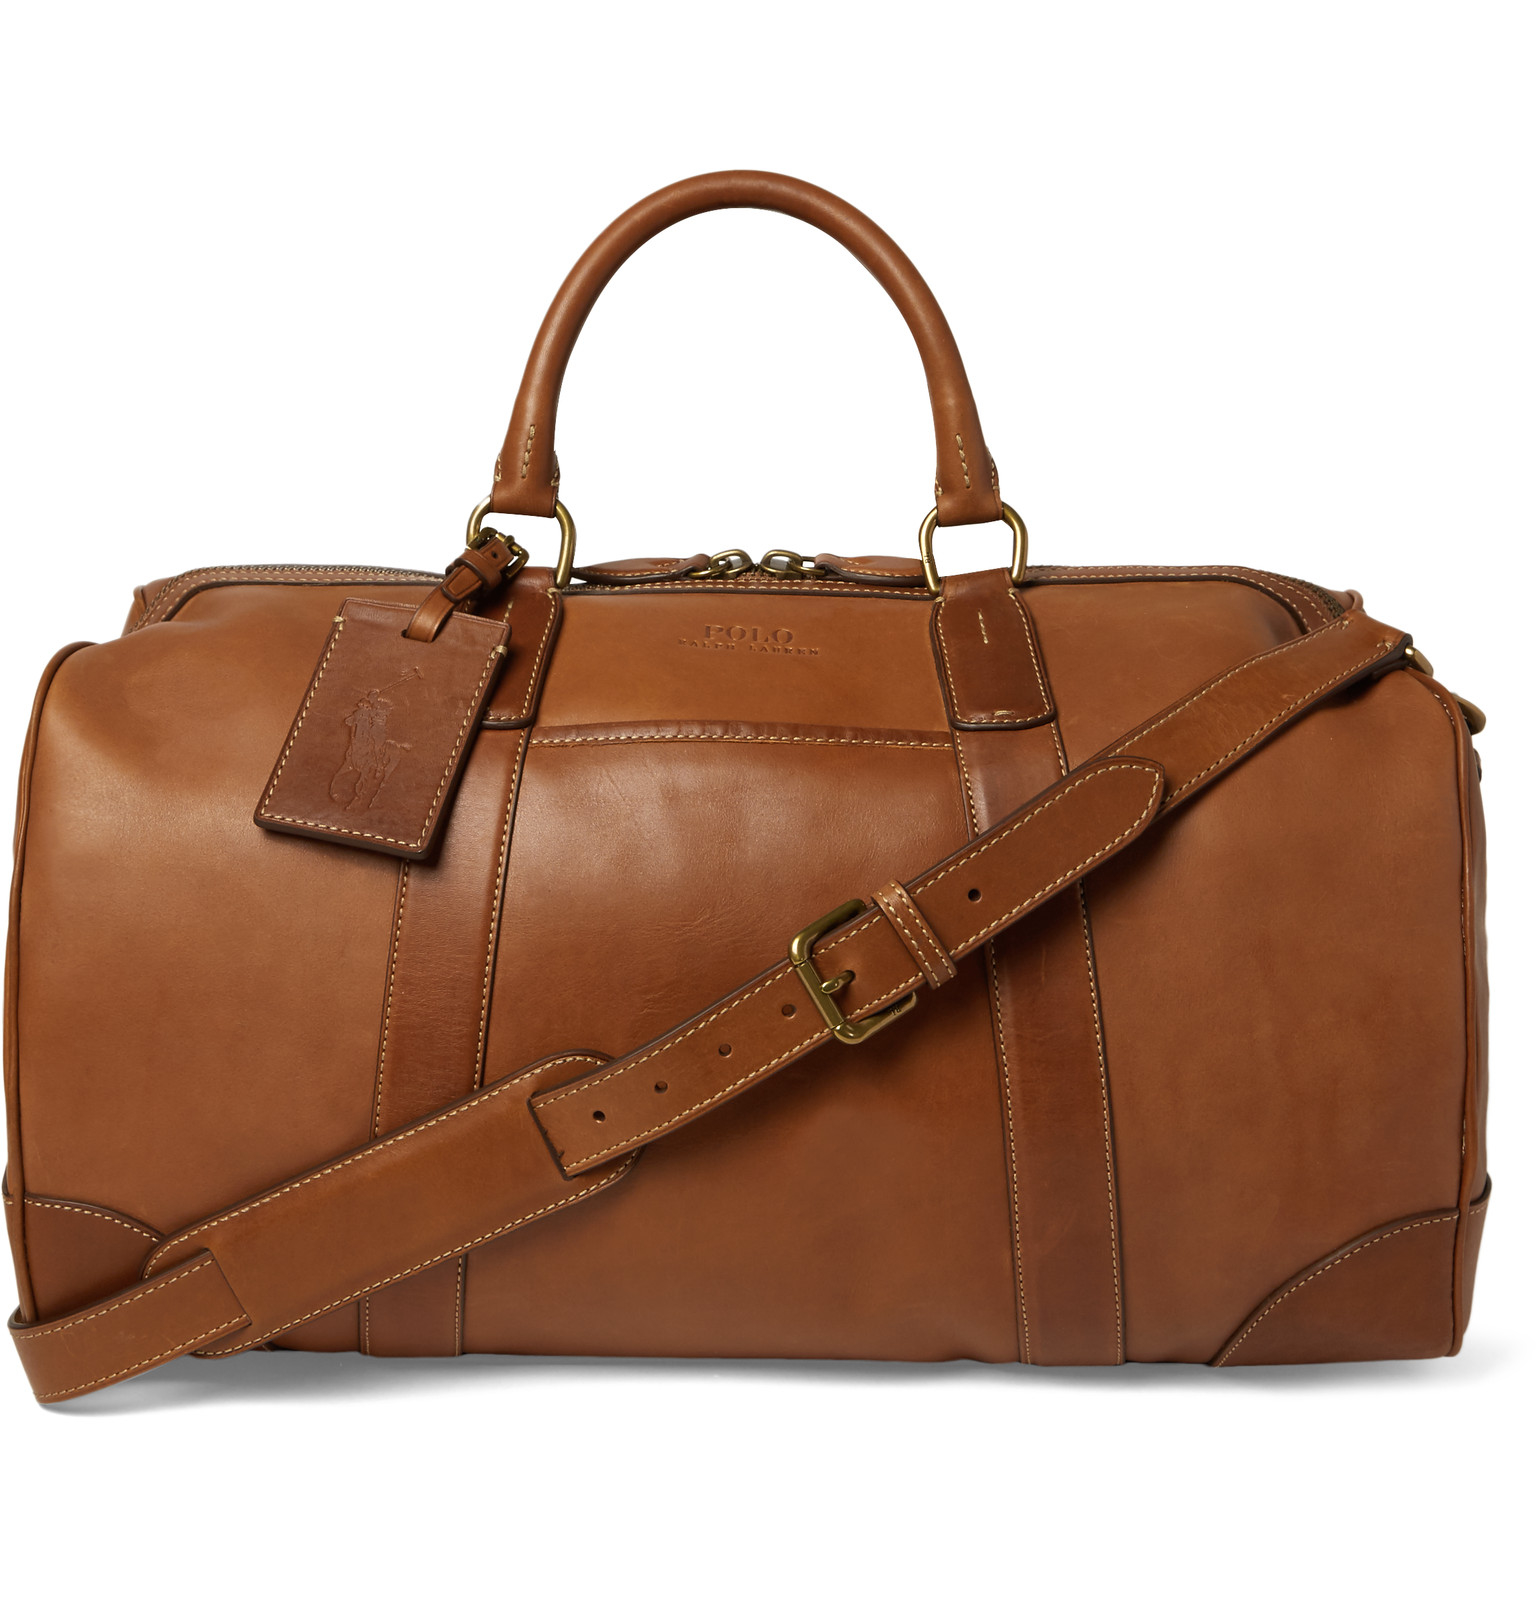 61904418b9f7 Polo Ralph Lauren Leather Duffle Bag in Brown for Men - Lyst